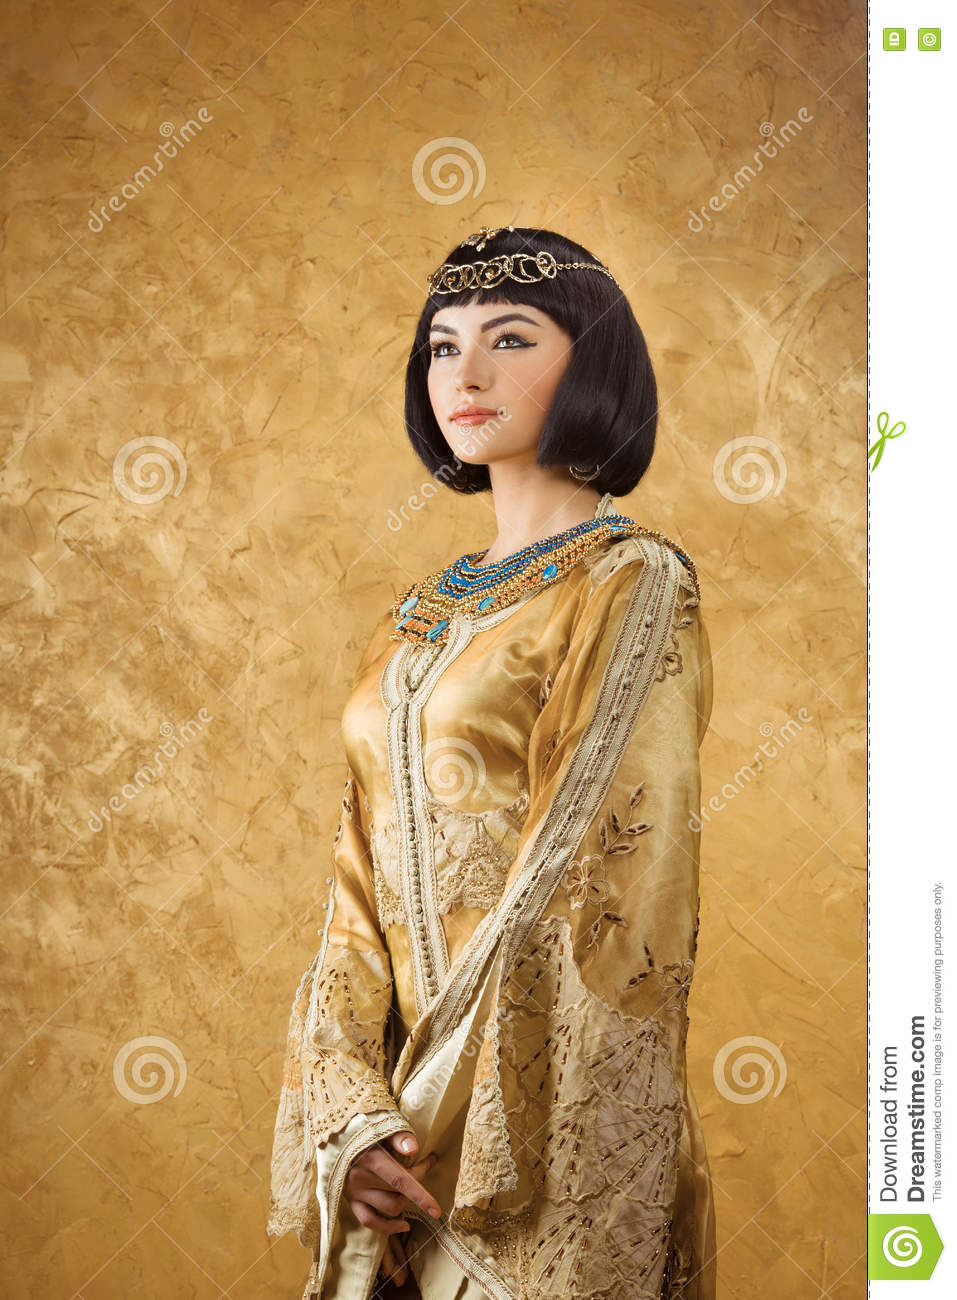 an analysis of the egyptian queen cleopatra The egyptian queen resided in one of caesar's but recent analysis has indicated that it could depict her descendant cleopatra vii due to the three uraei.